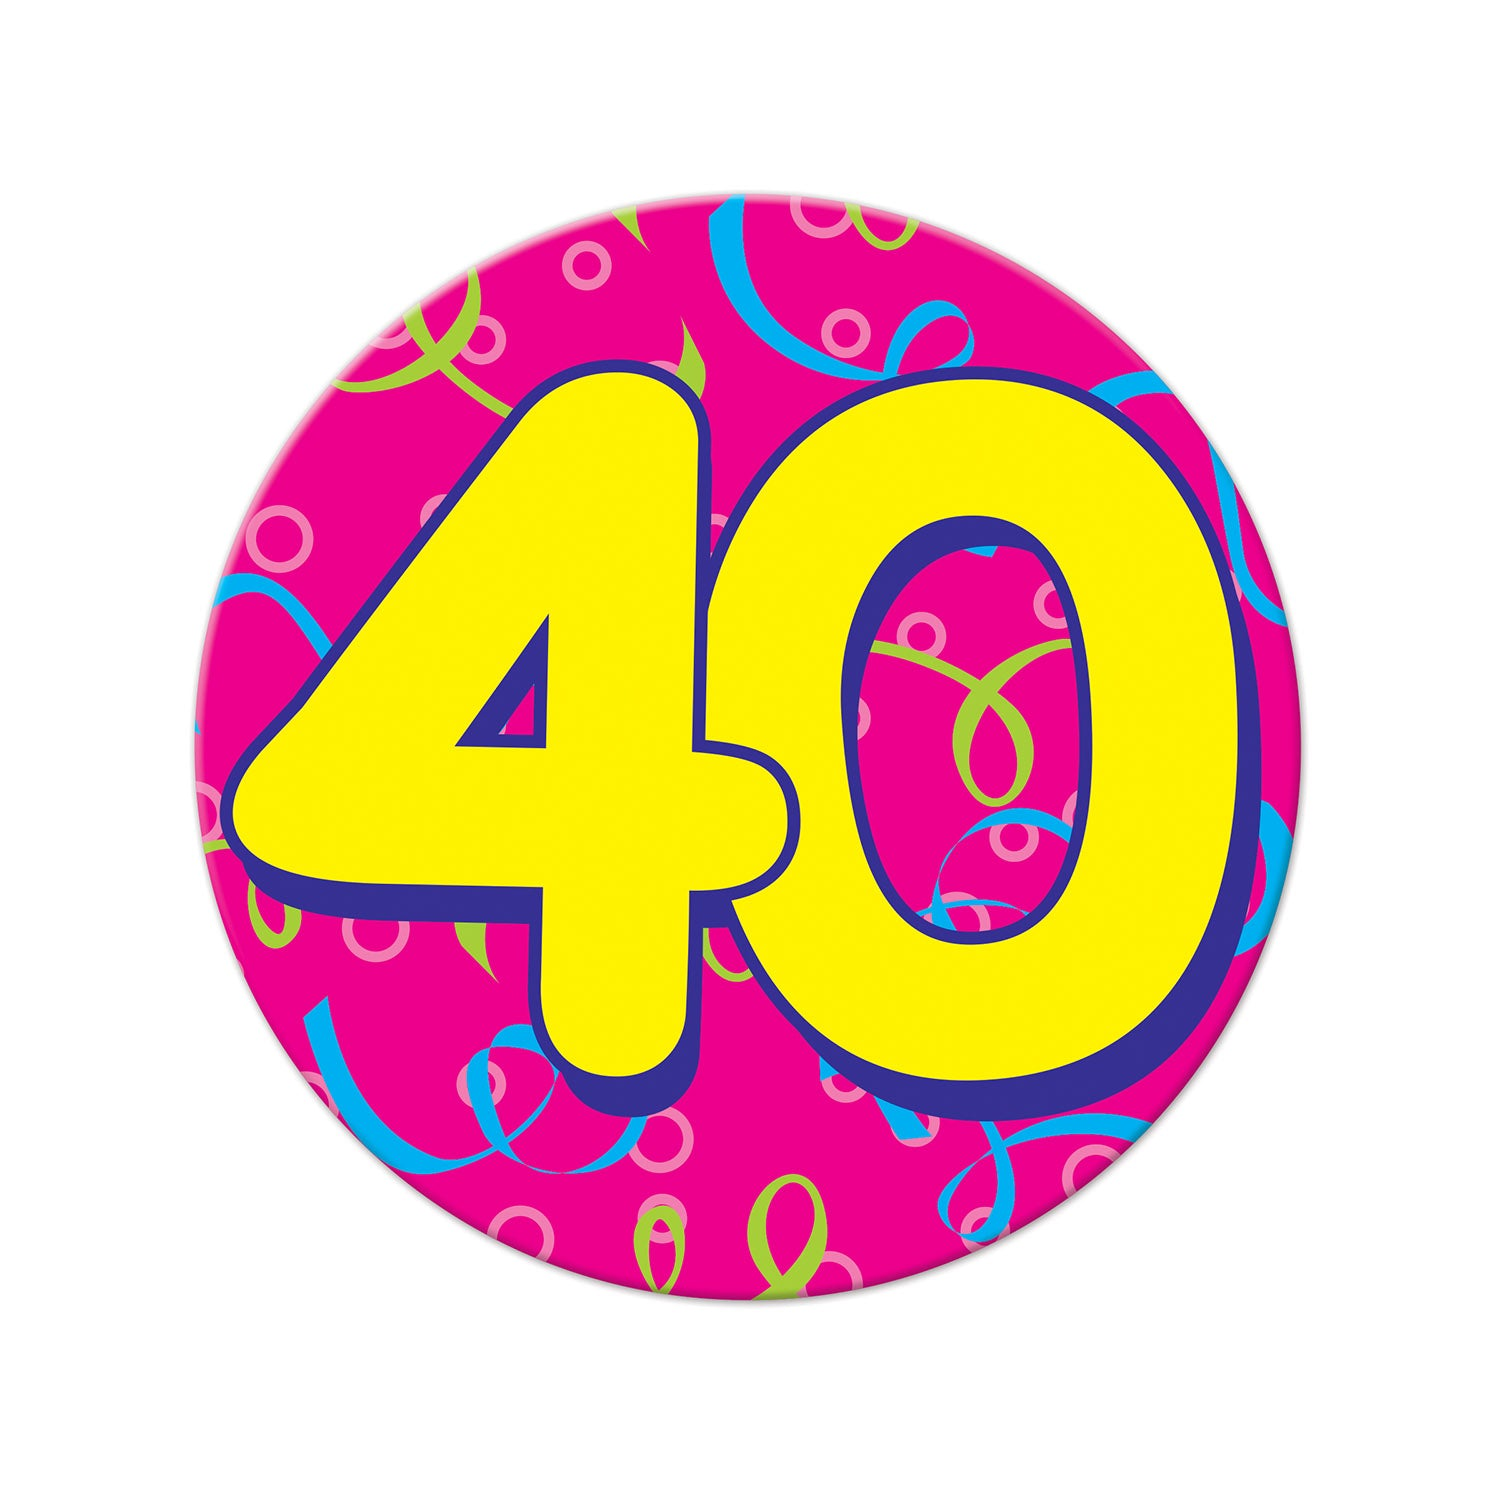 Jumbo 40 Button by Beistle - 40th Birthday Party Decorations